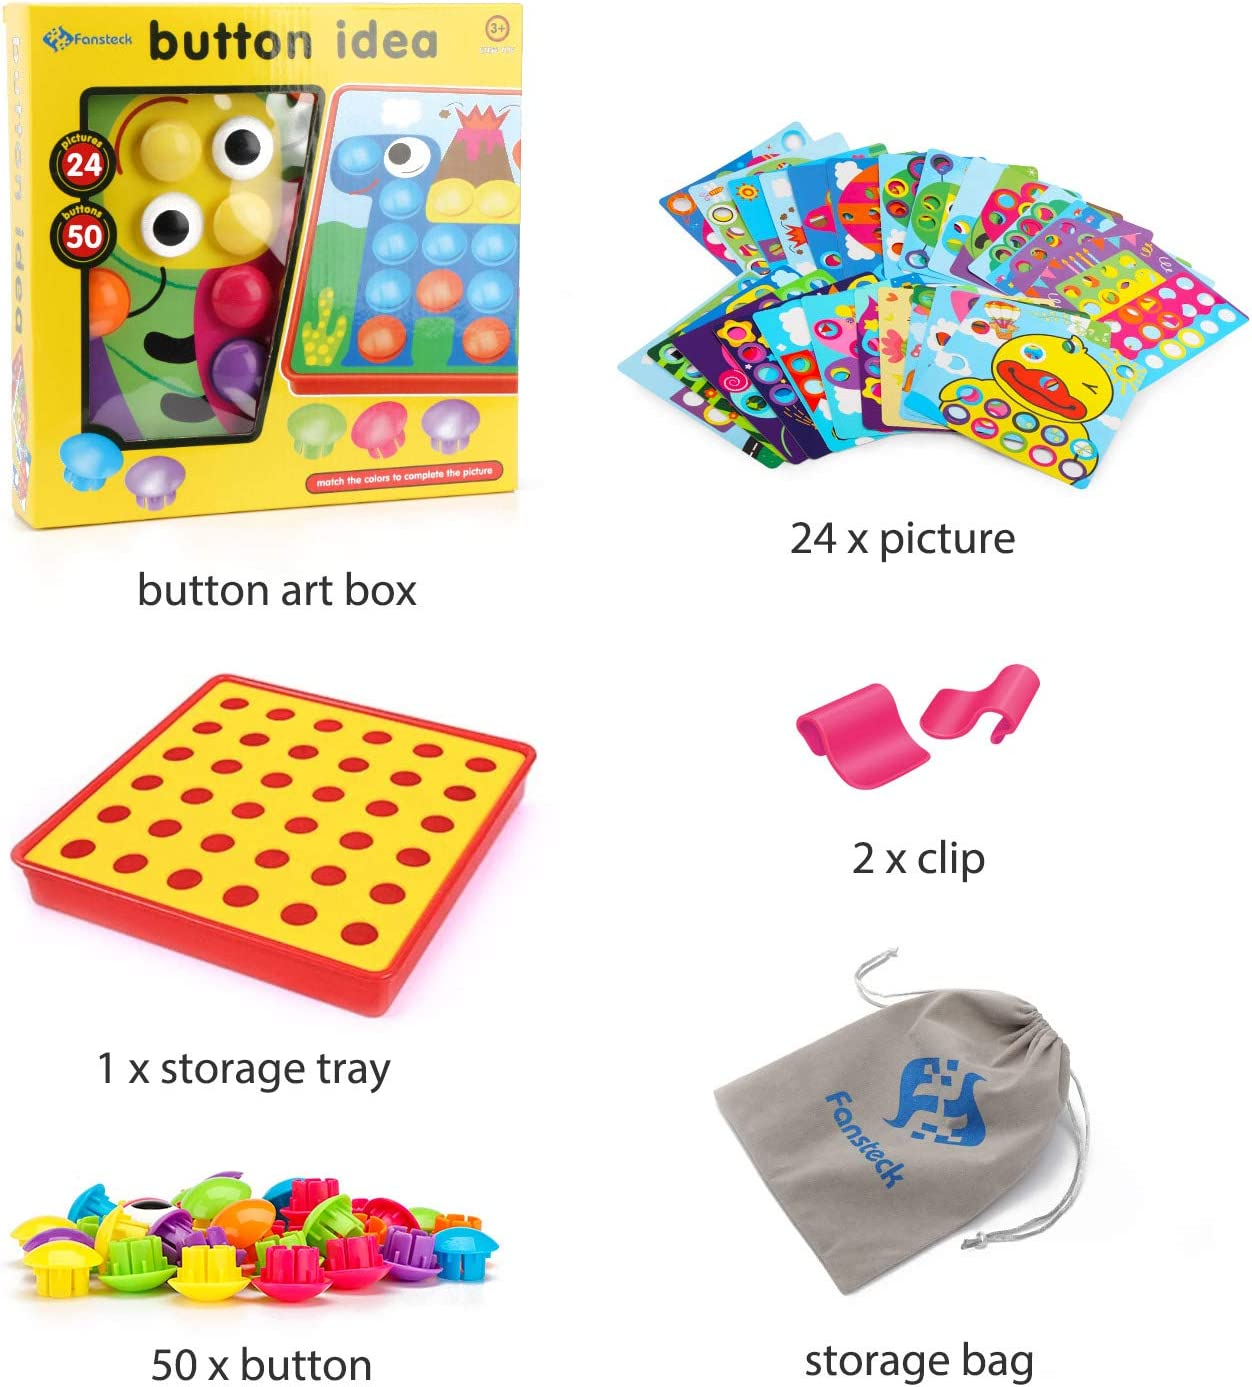 Include 24 Pictures and 50 Buttons with a Storage Bag Ideal Birthday for Age of 3 4 5 6 Fansteck Button Art Educational Toys for Toddlers Color Matching Toddler Arts and Crafts